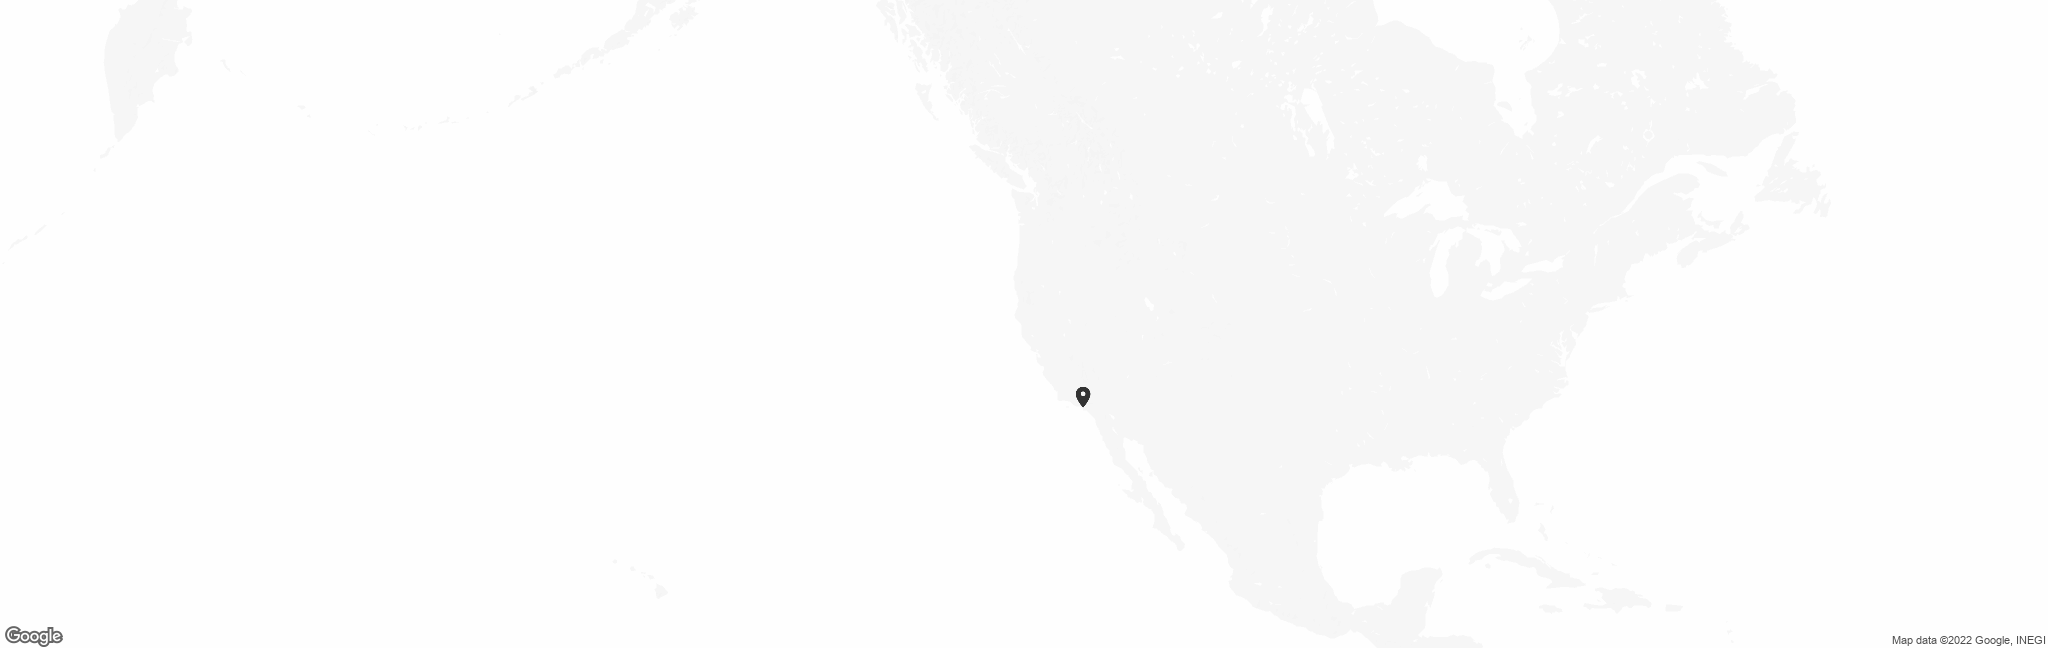 Map of US with pin of Exceptional Mindset Tutors location